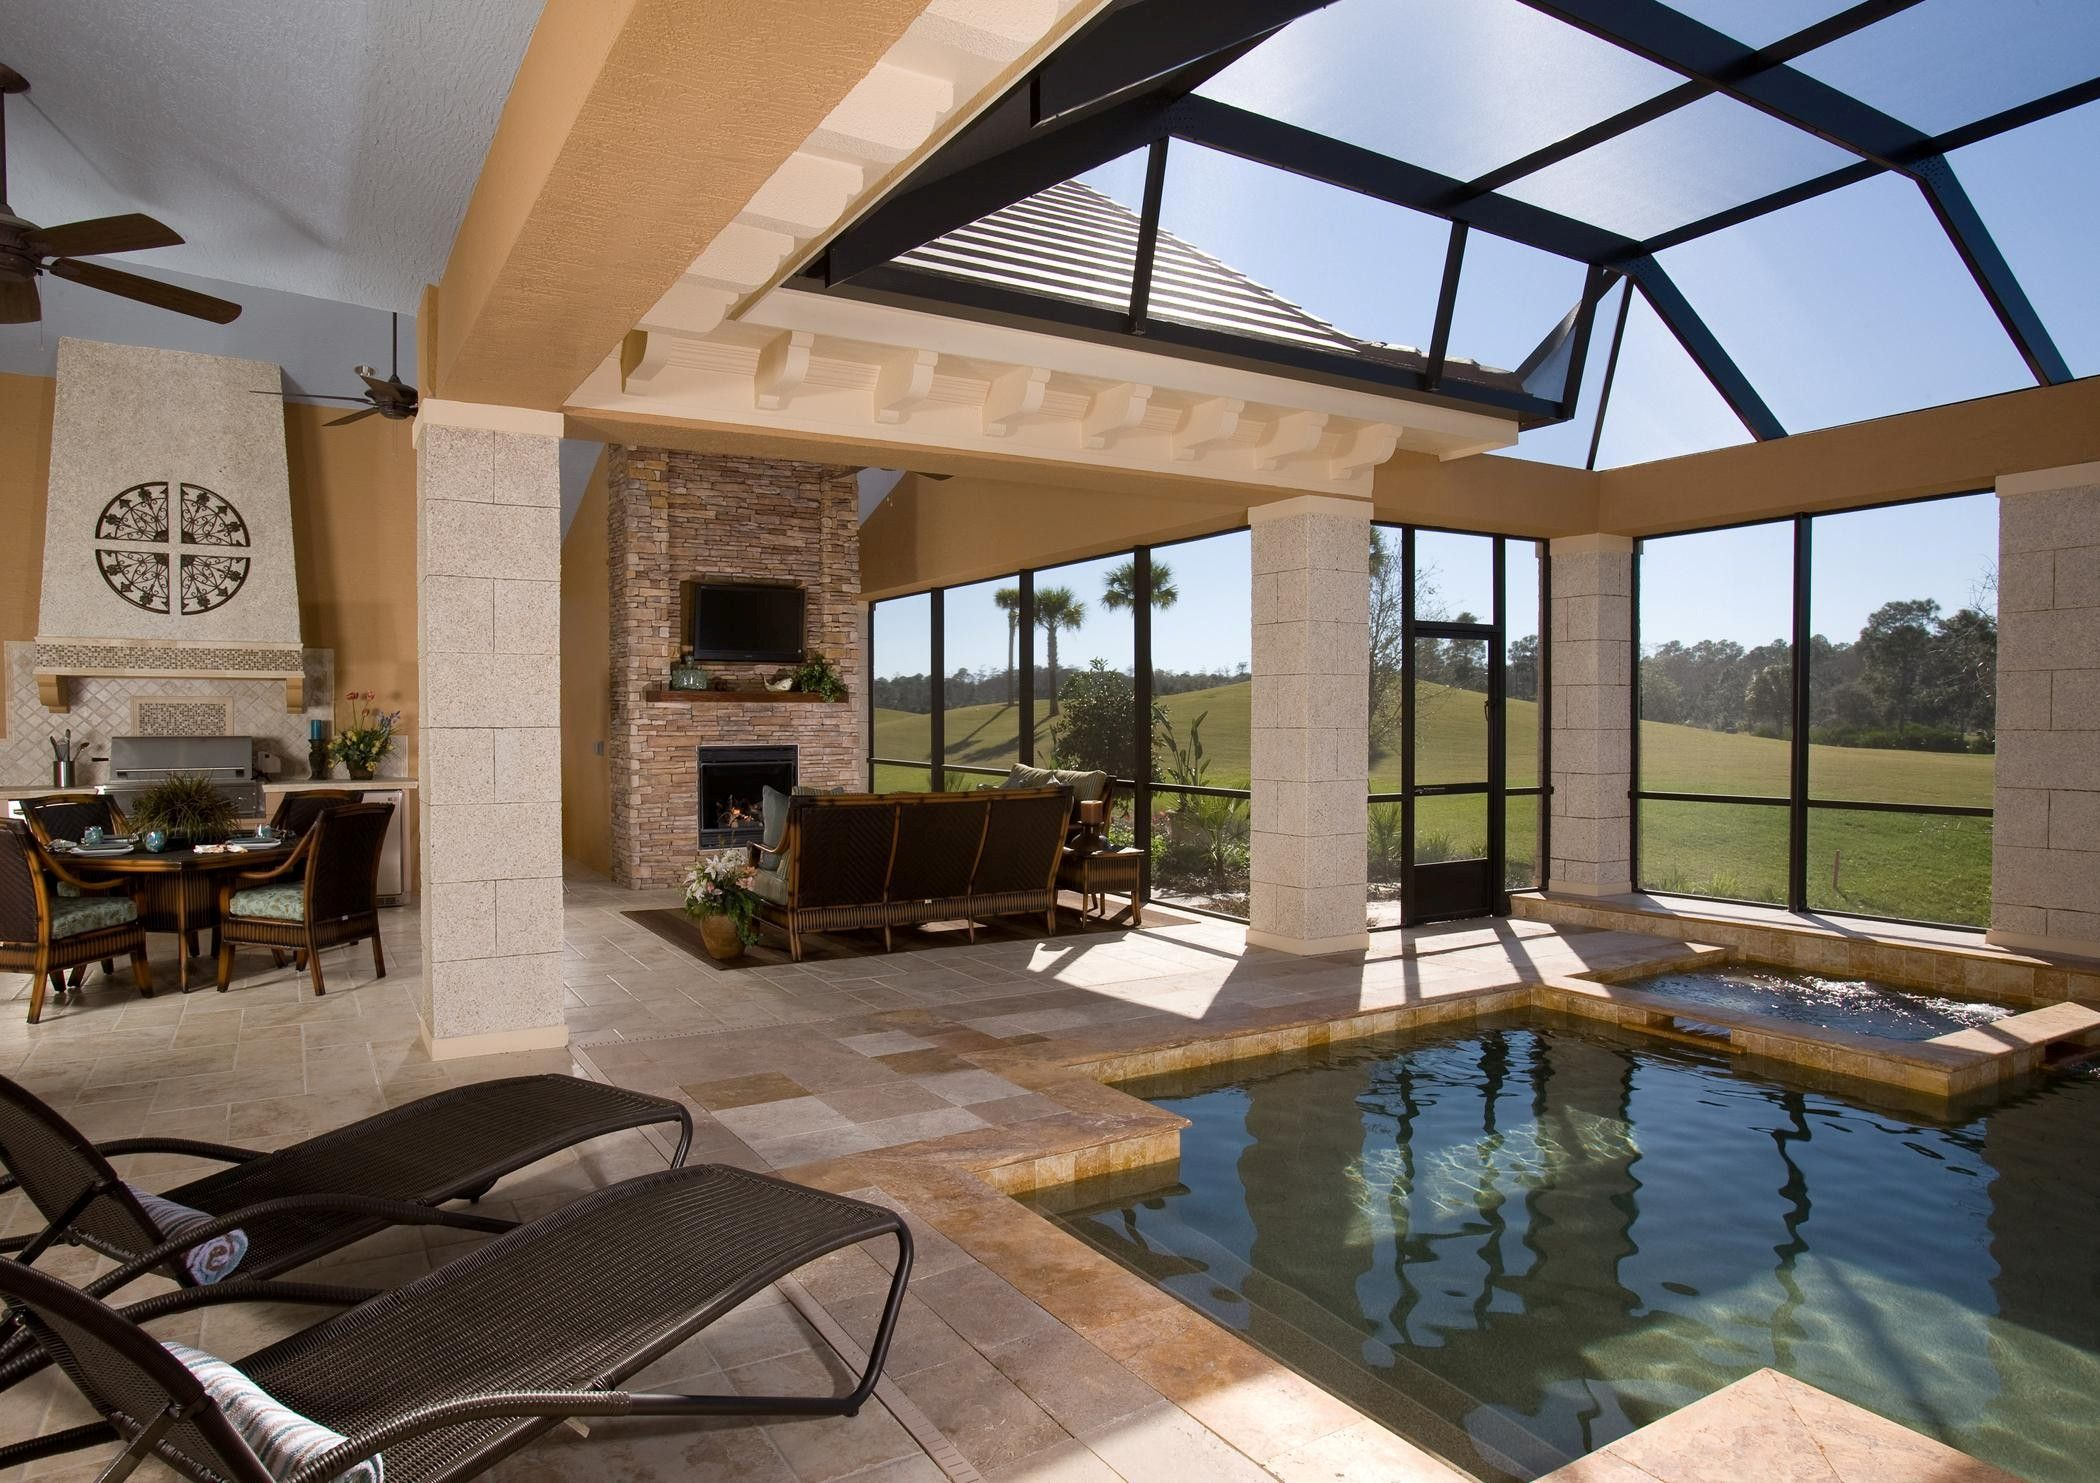 Fireplace Remodel Jacksonville Fl 75 Plus 25 Outdoor Rooms Sun Shelters To Improve Outdoor